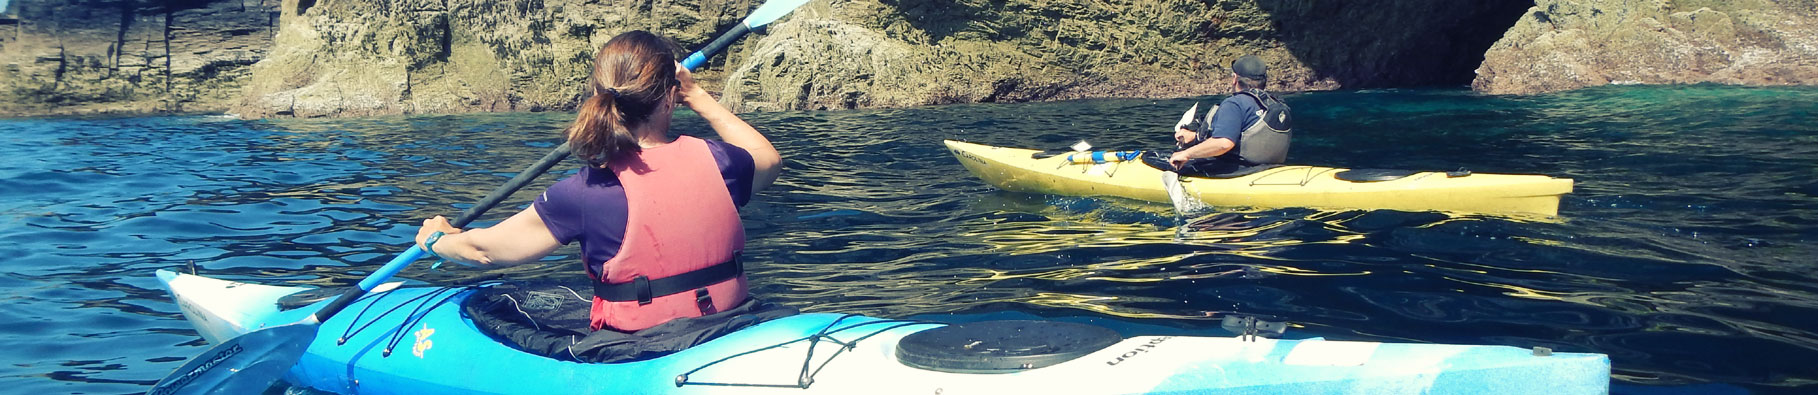 Sea kayaking course at Shoreline in Bude, Cornwall